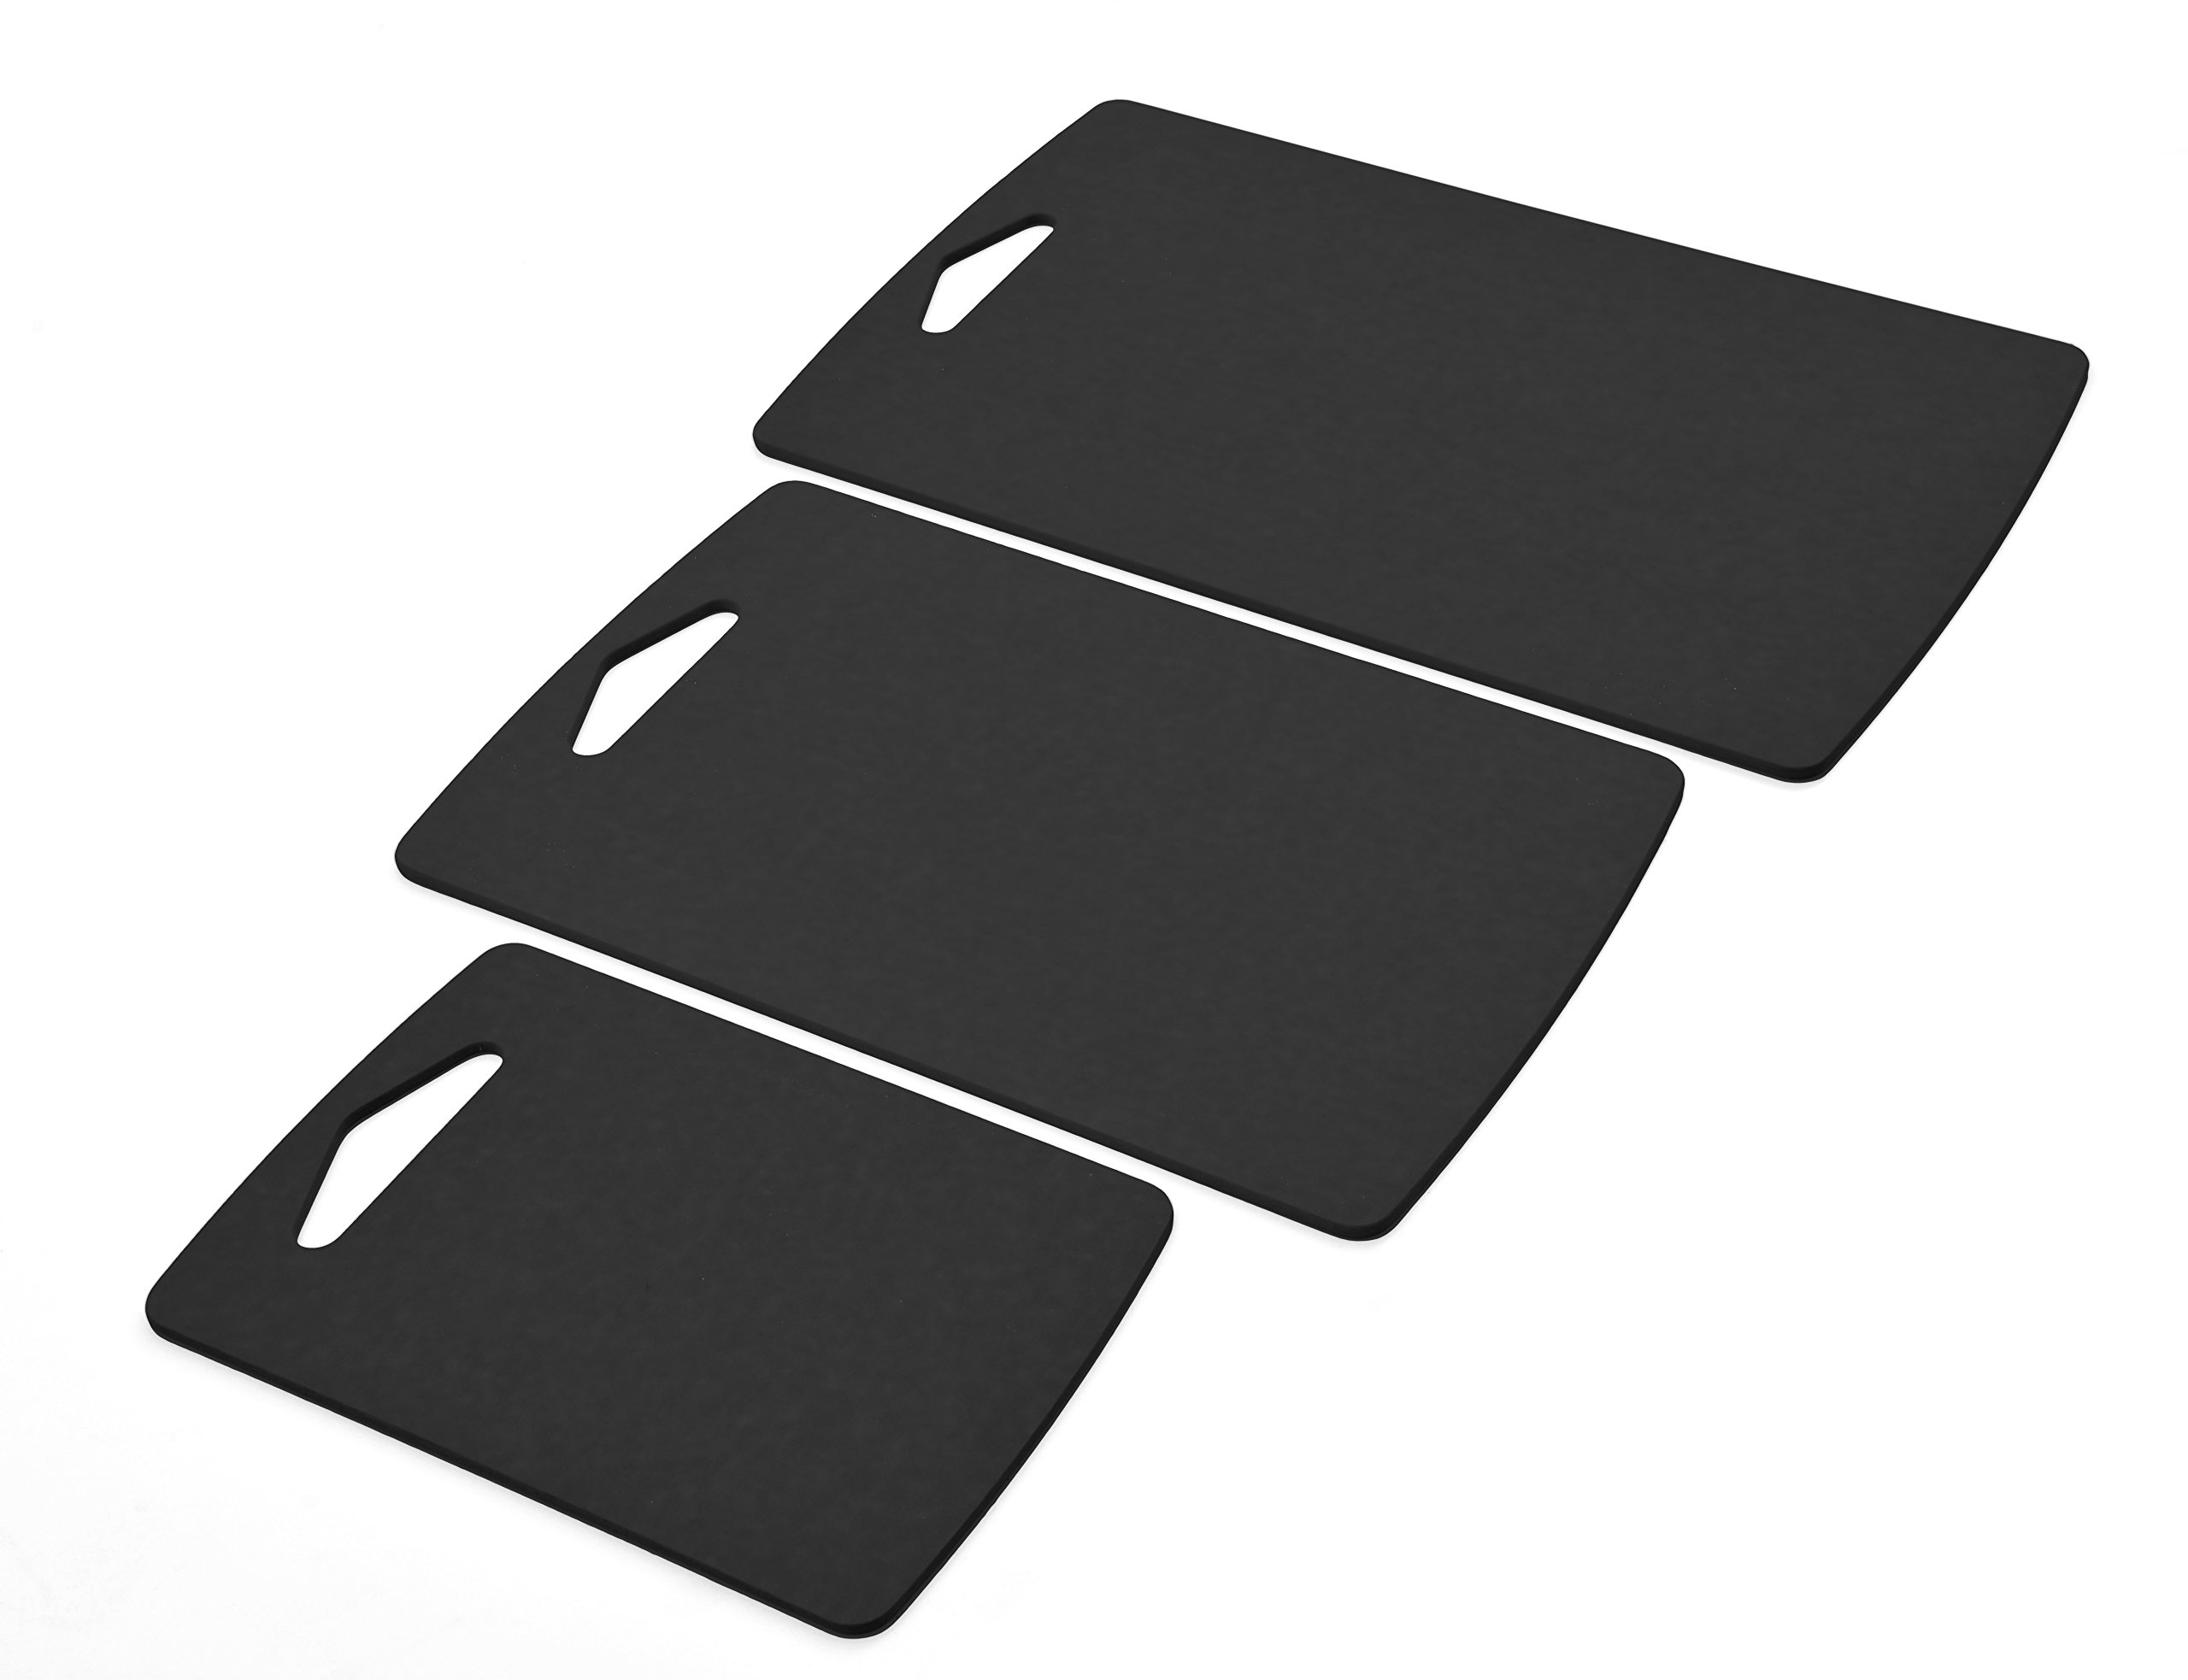 Prep Series Cutting Boards By Epicurean, 3 Piece Set, Slate by Epicurean